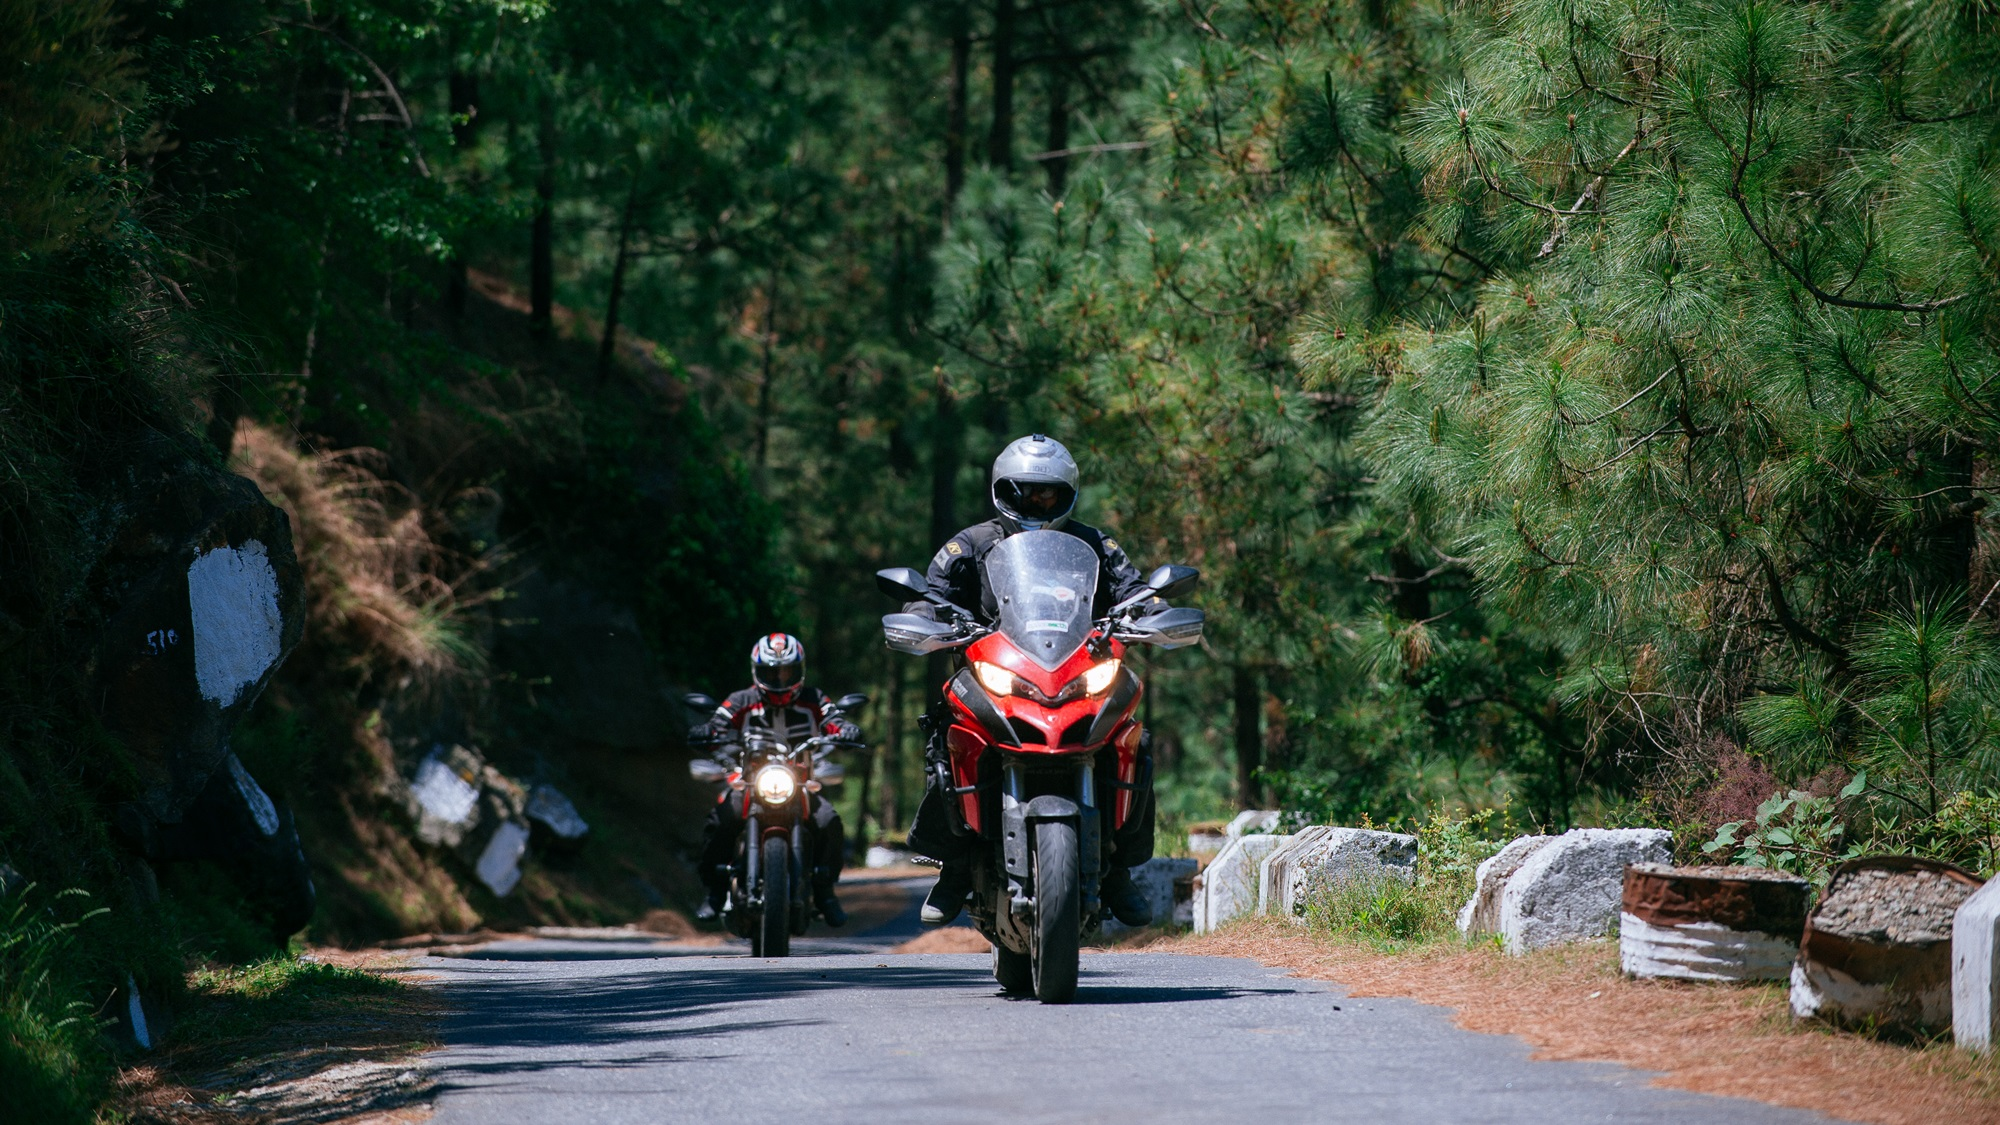 Ducati Dream Tour India Himachal Pradesh